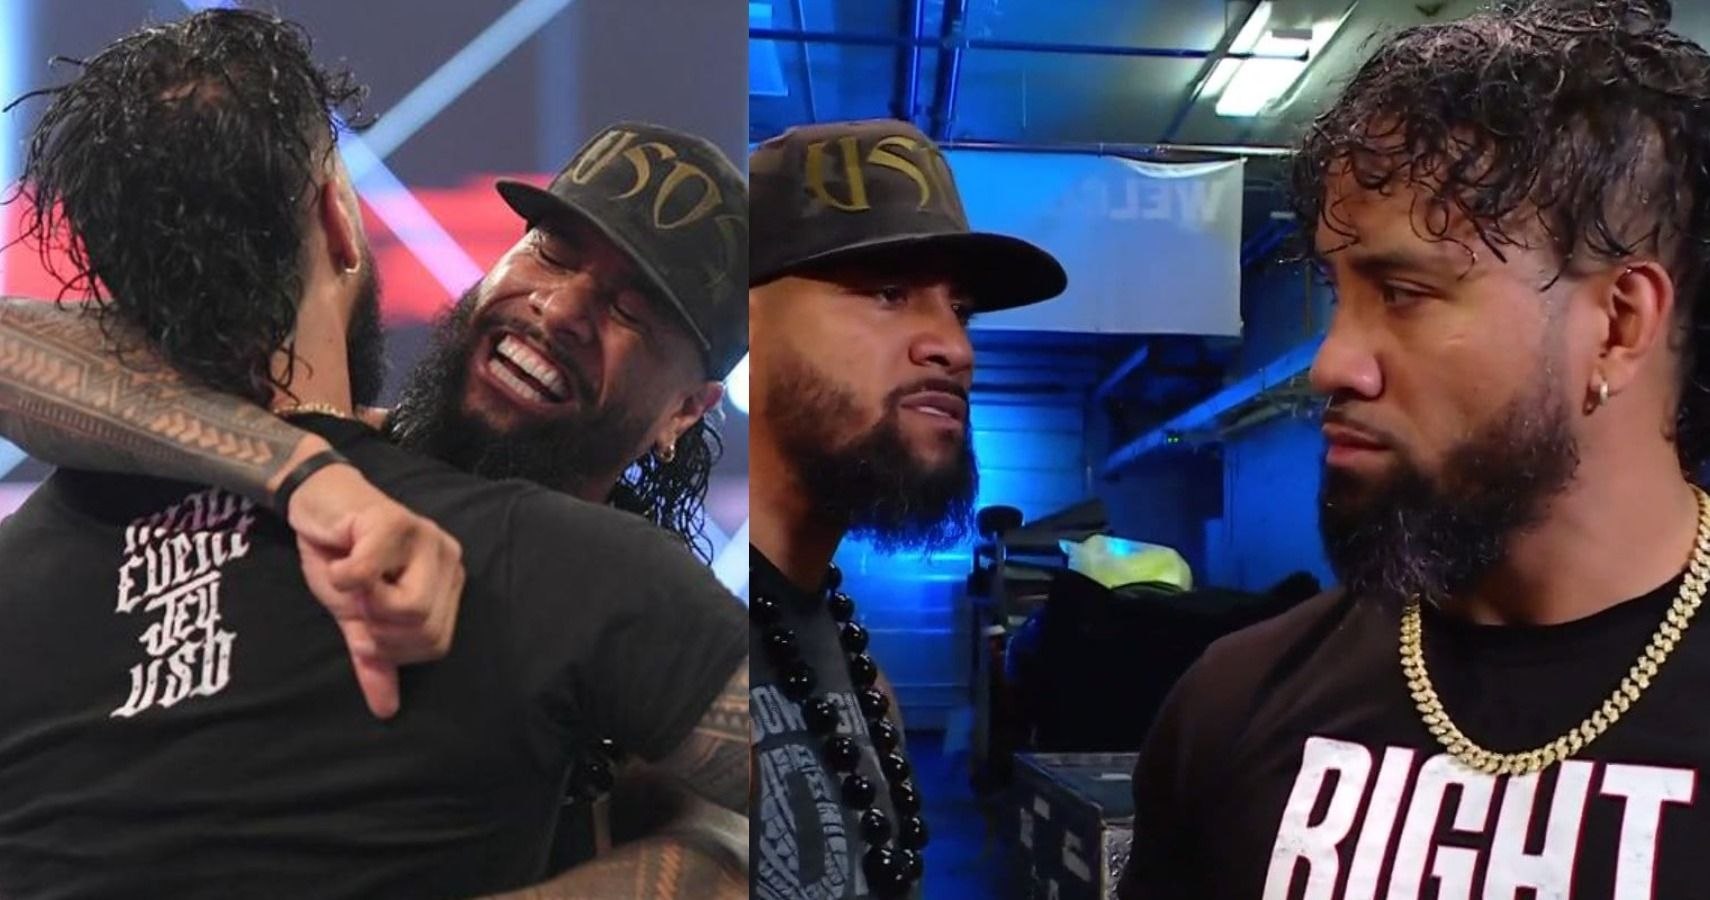 Jimmy Uso's SmackDown Return Likely Means The End Of Jey Uso's Singles Run